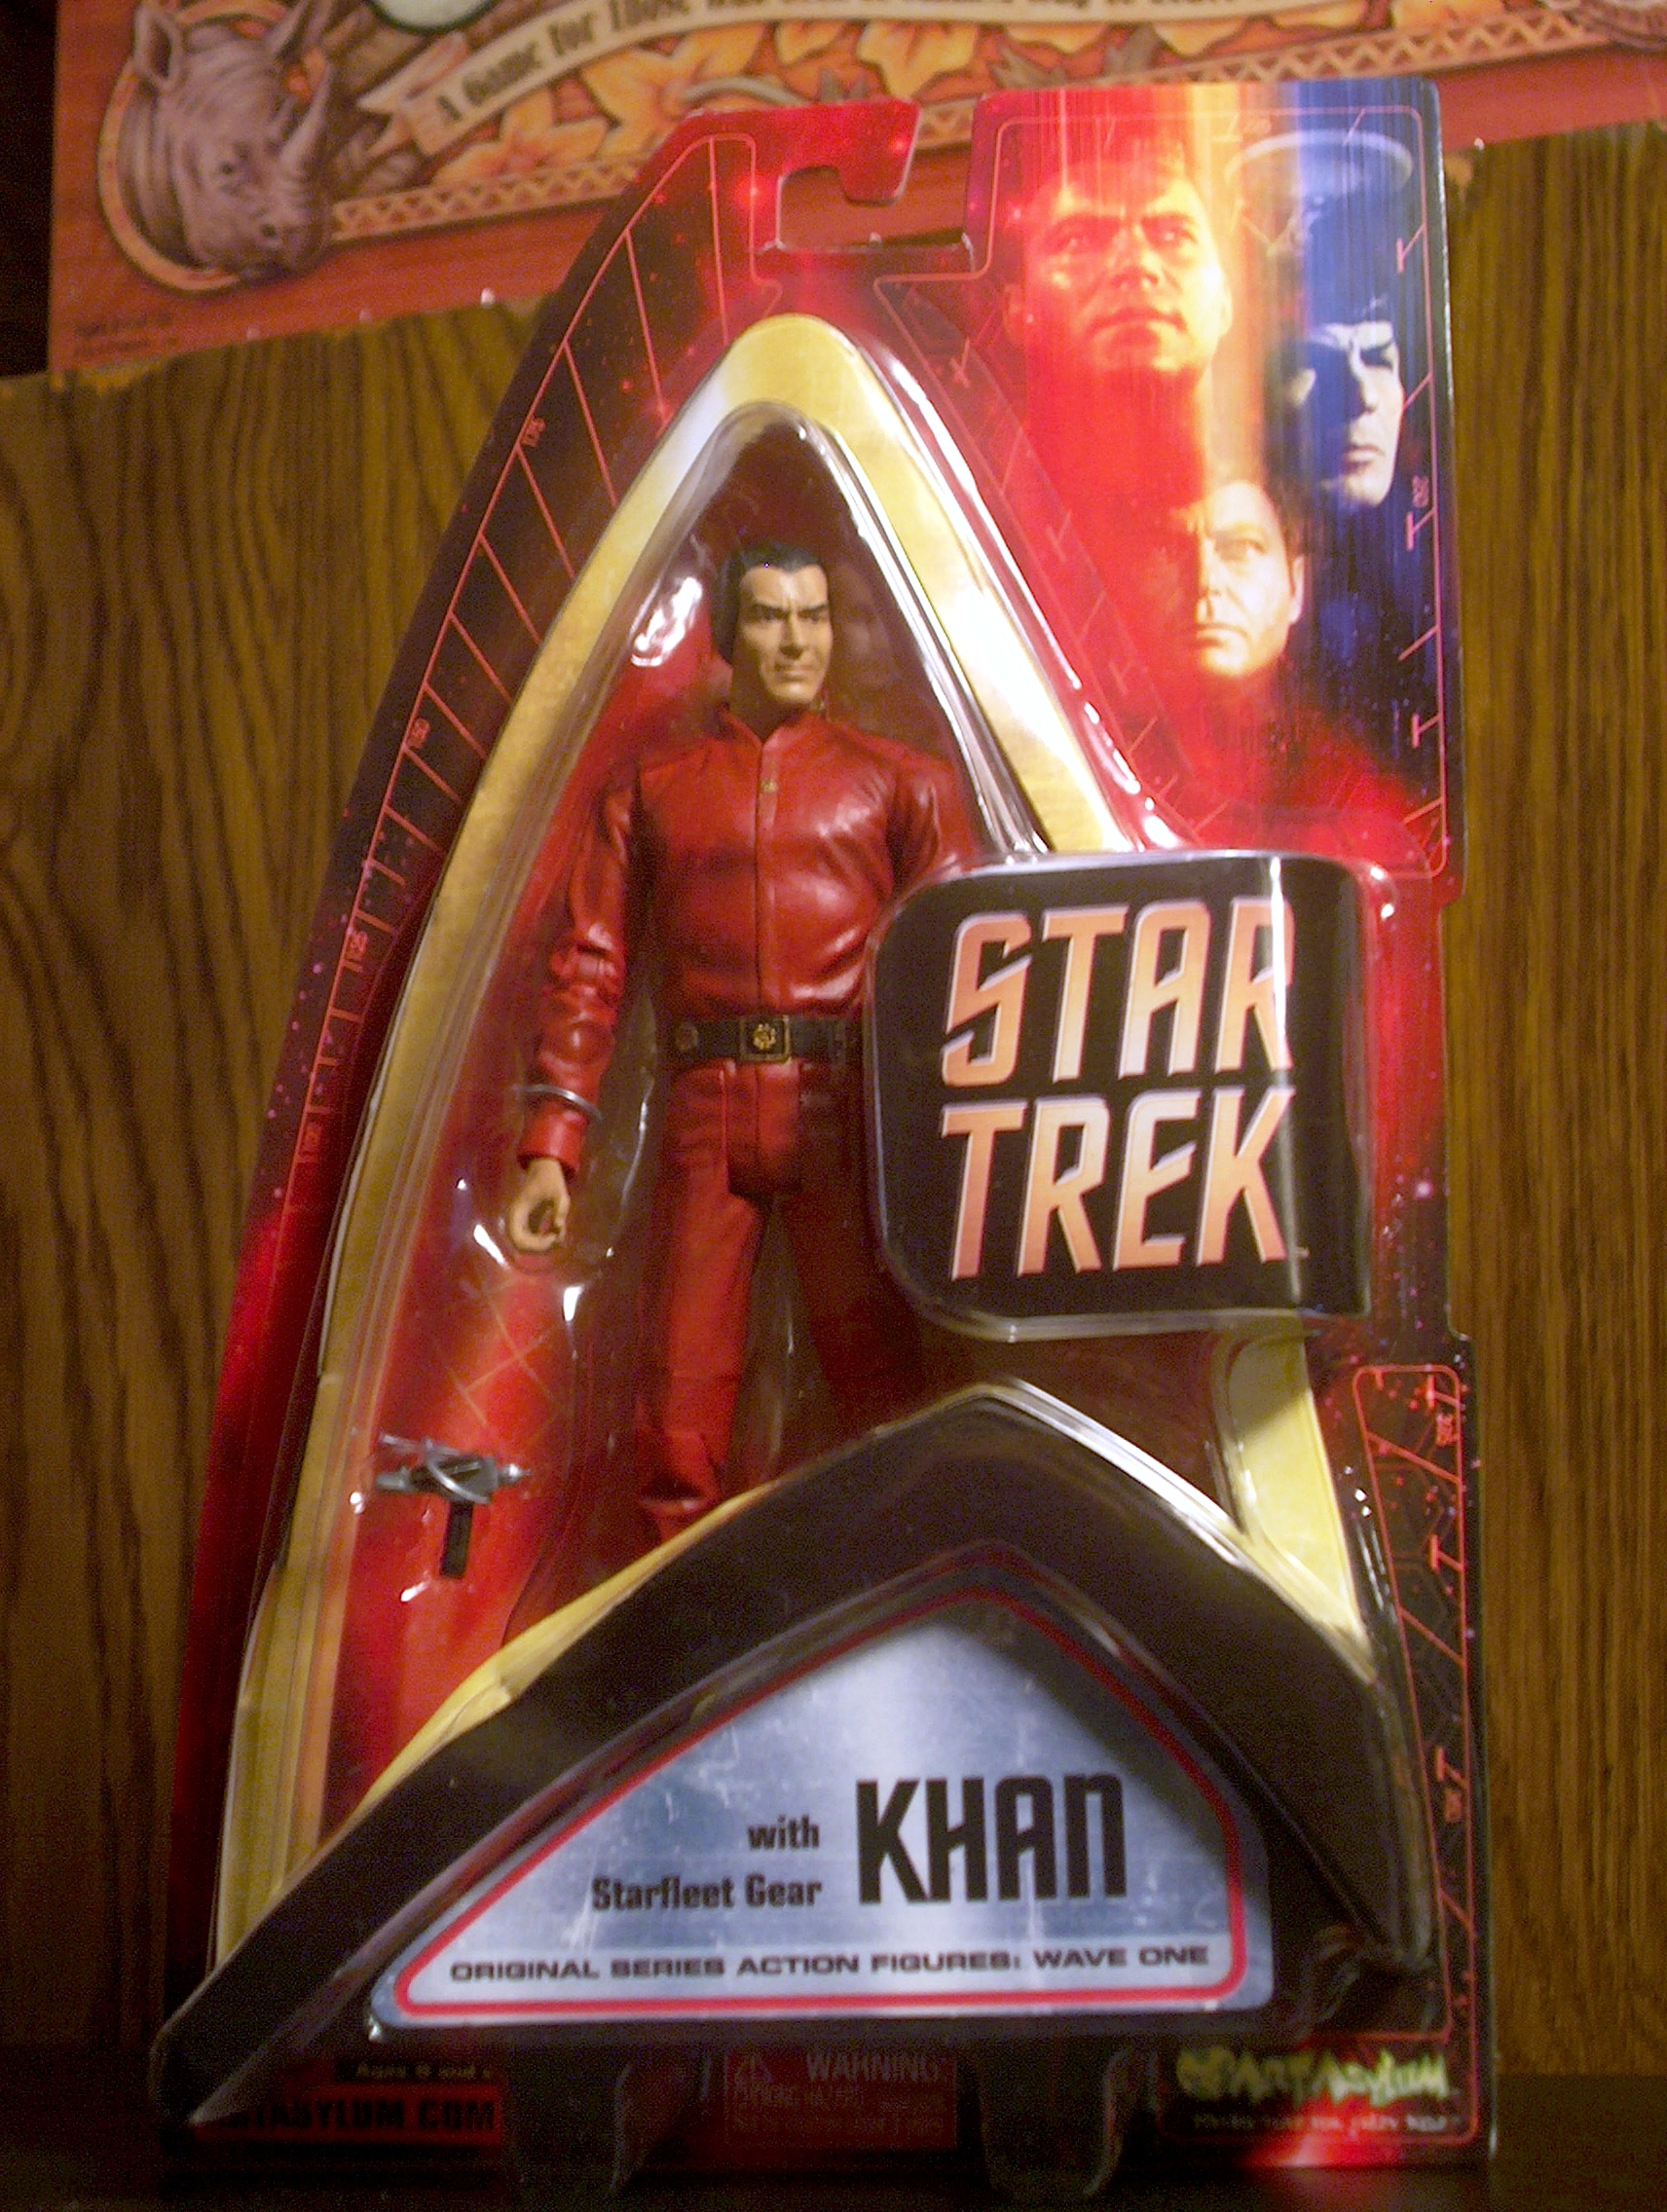 Khan with Starfleet Gear